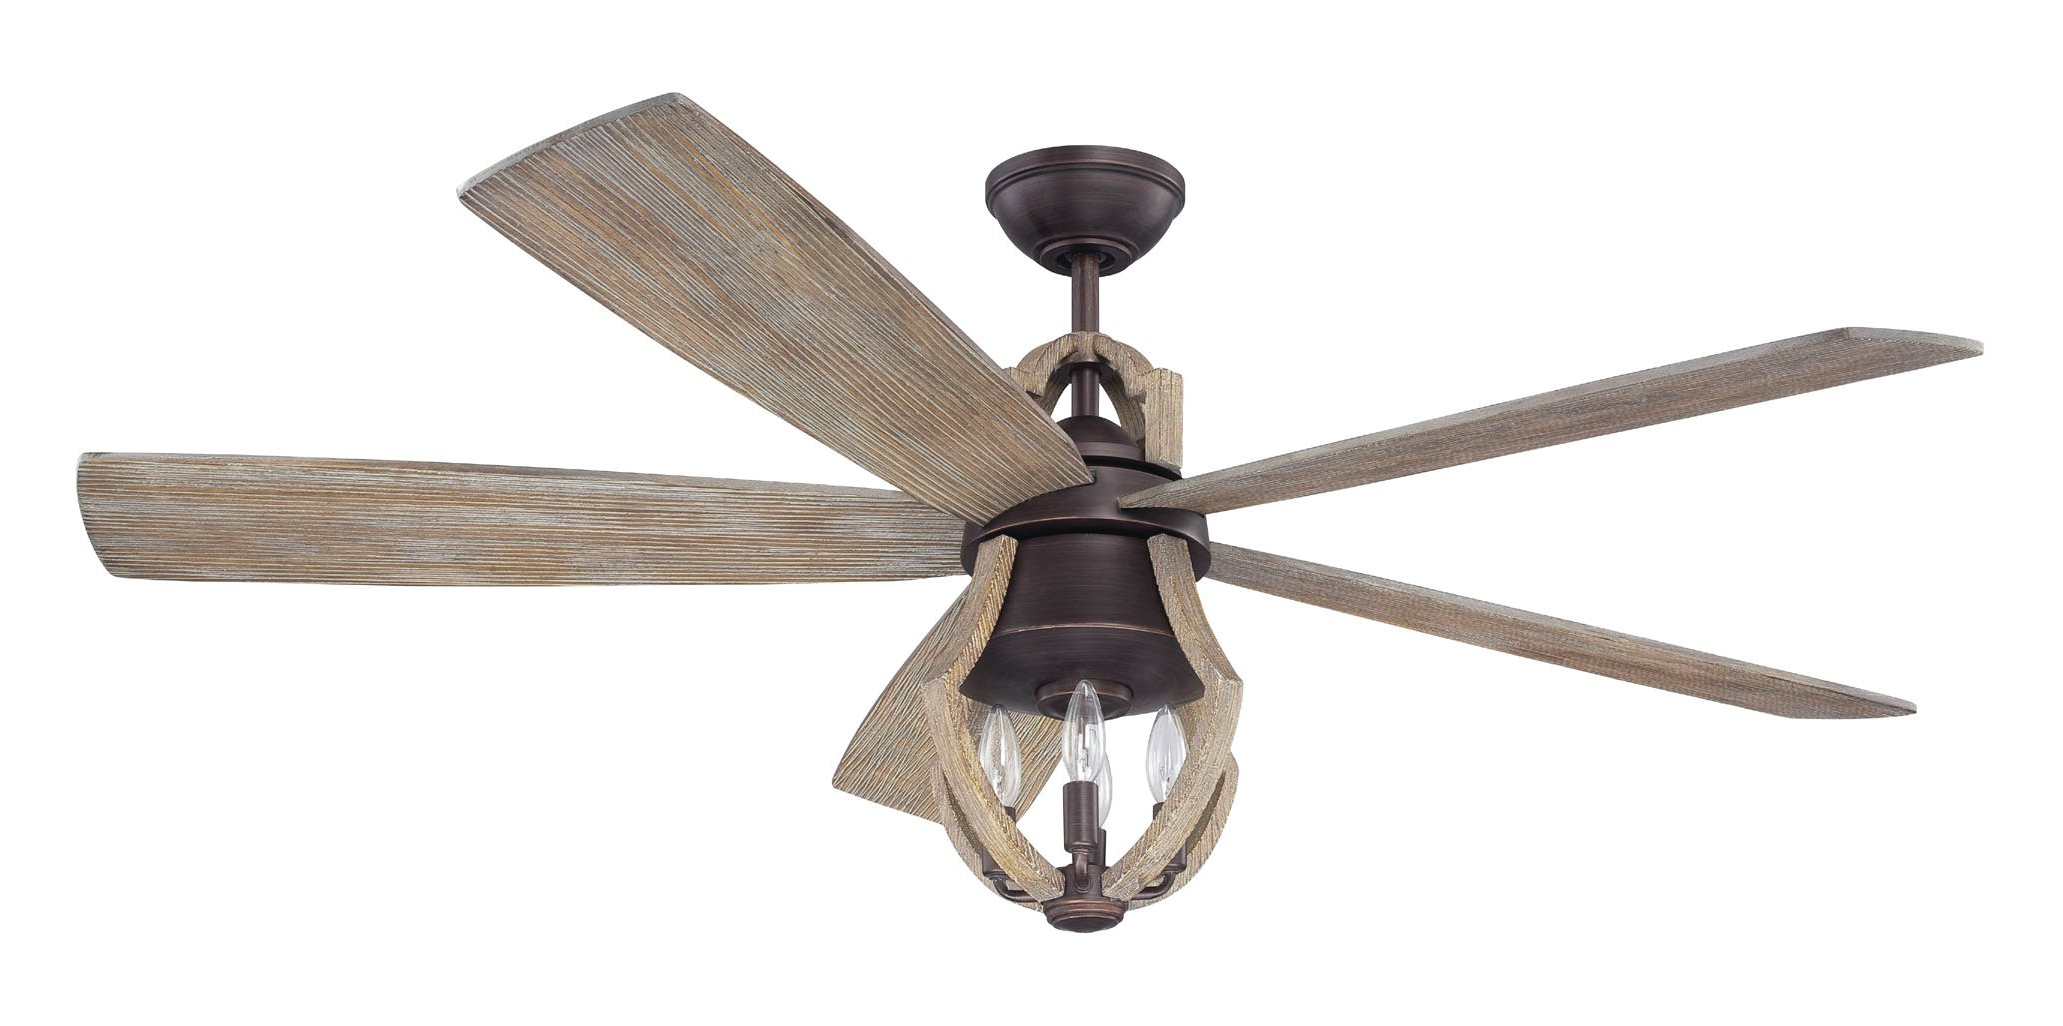 """56"""" Marcoux 5 Blade Ceiling Fan With Remote, Light Kit Regarding Most Recently Released Glenpool 5 Blade Ceiling Fans (Gallery 13 of 20)"""